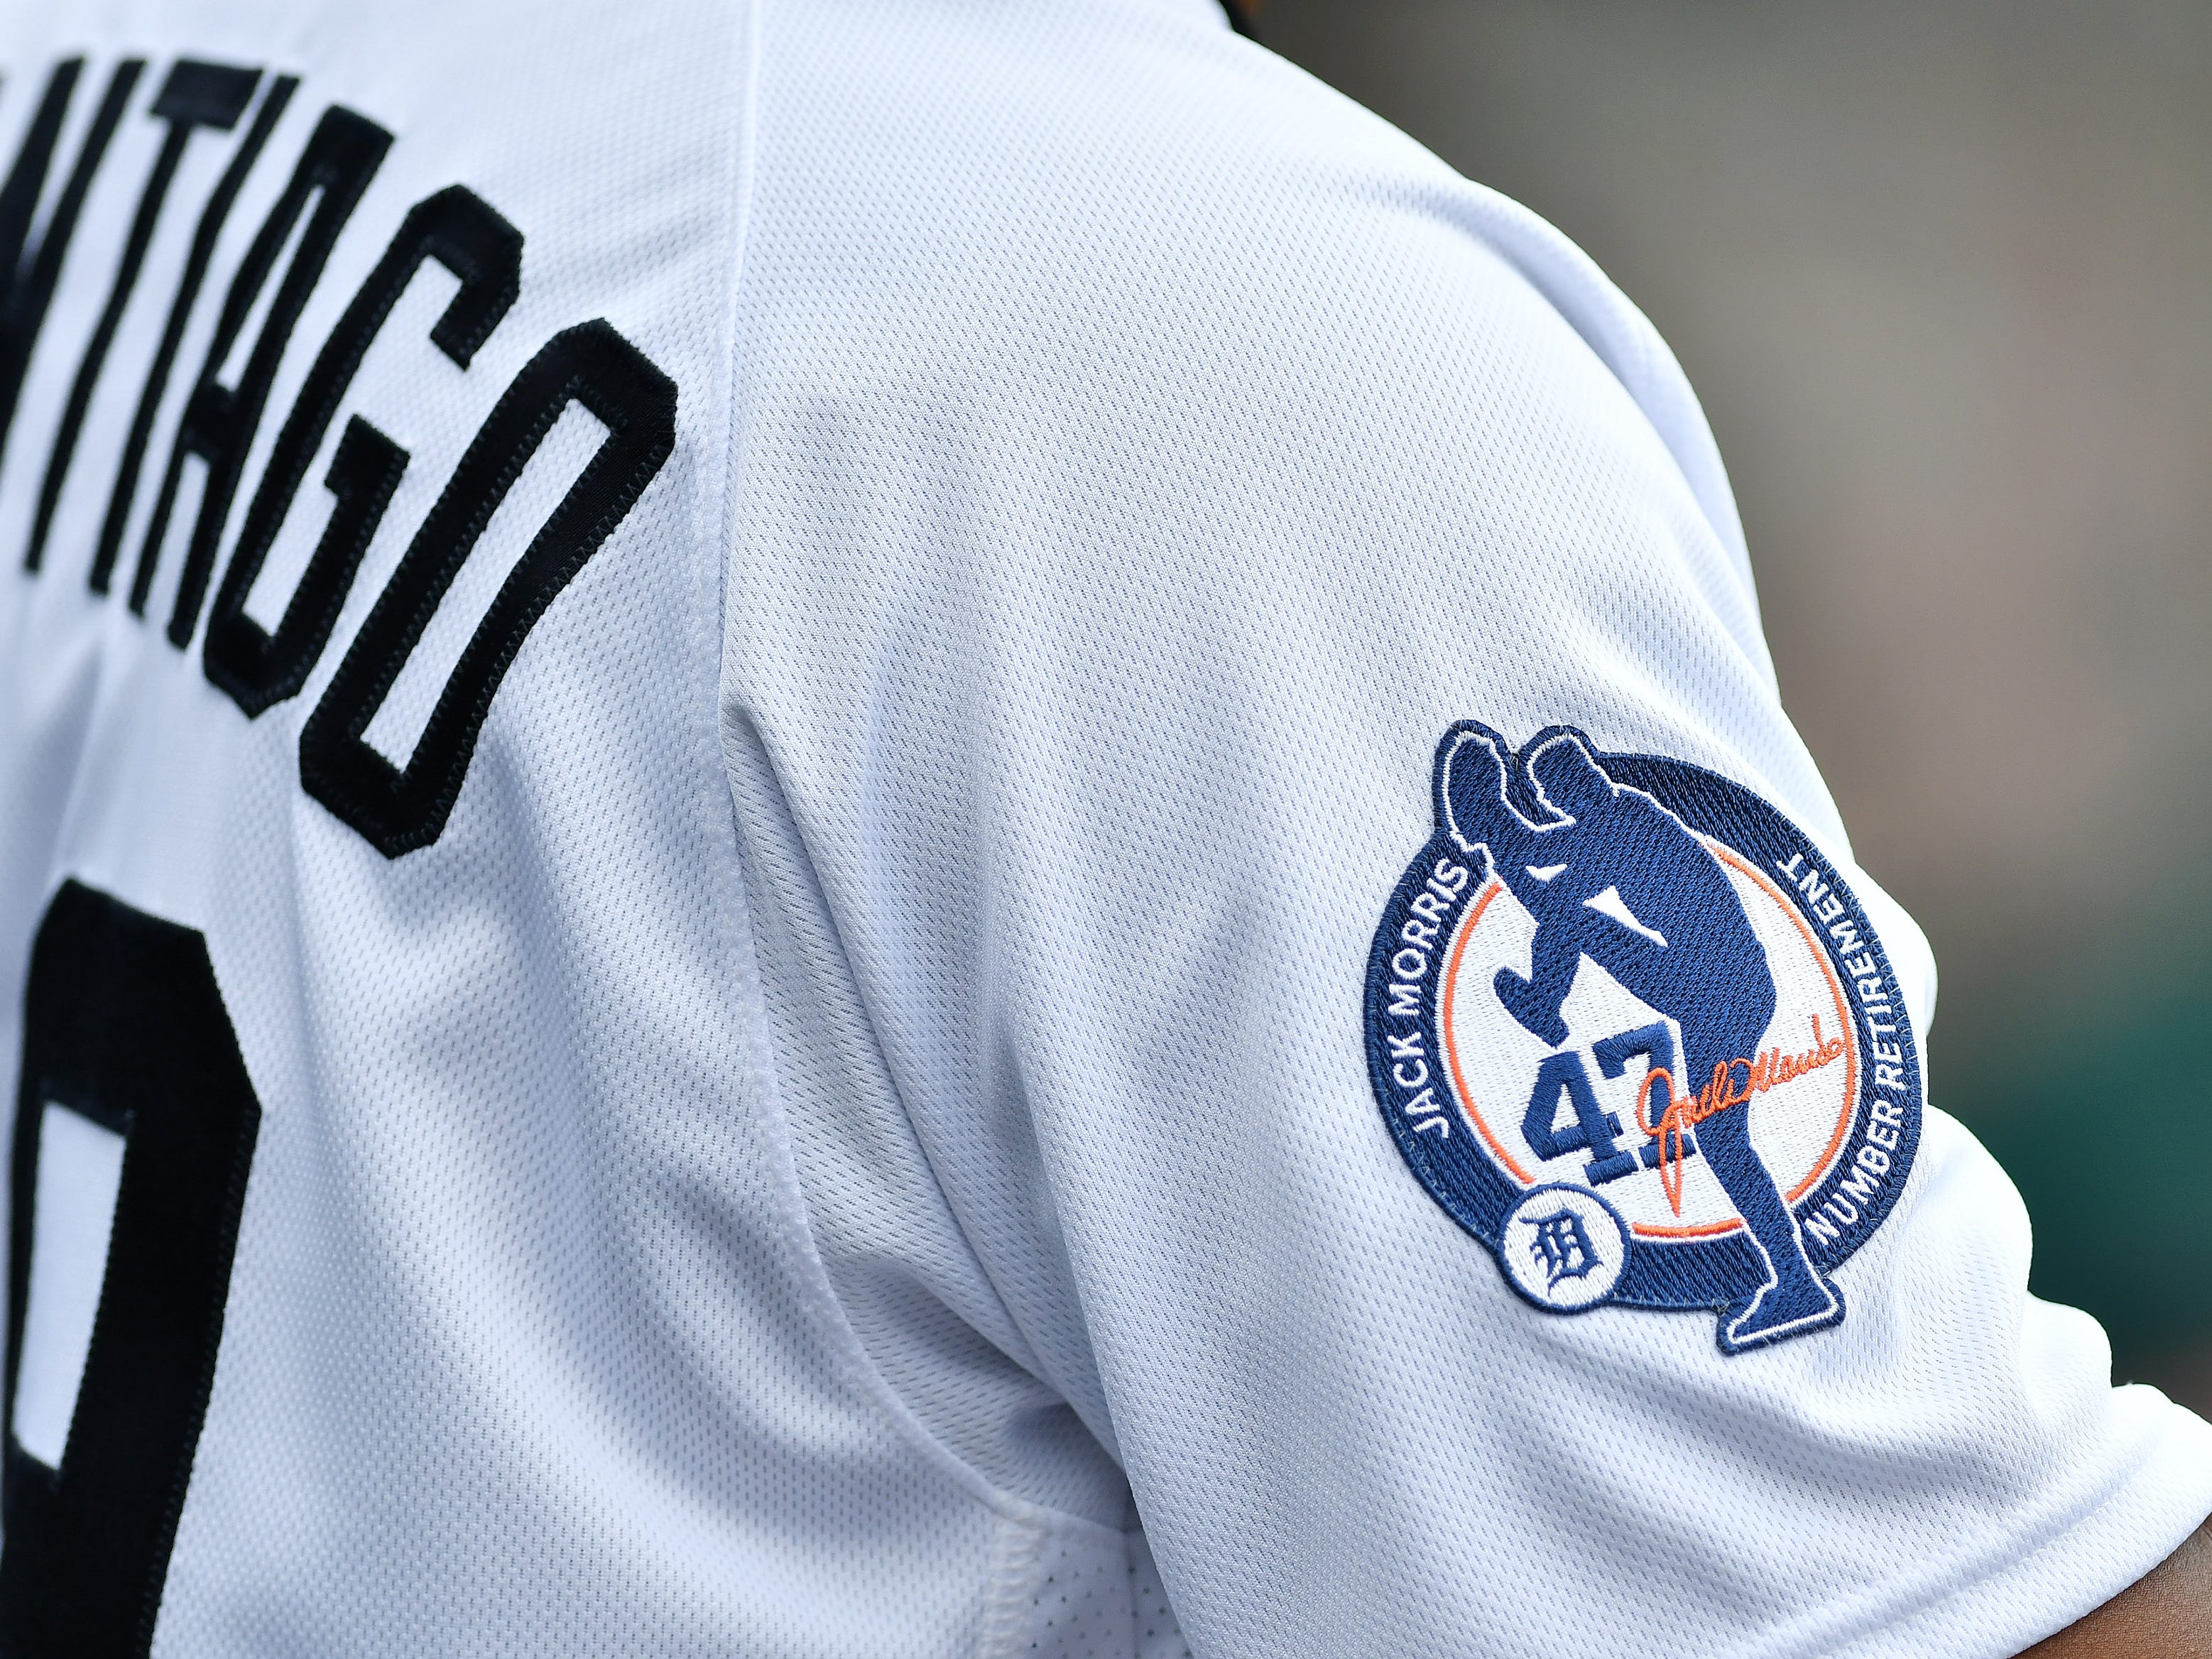 A special patch on the Tigers uniforms to honor Jack Morris.